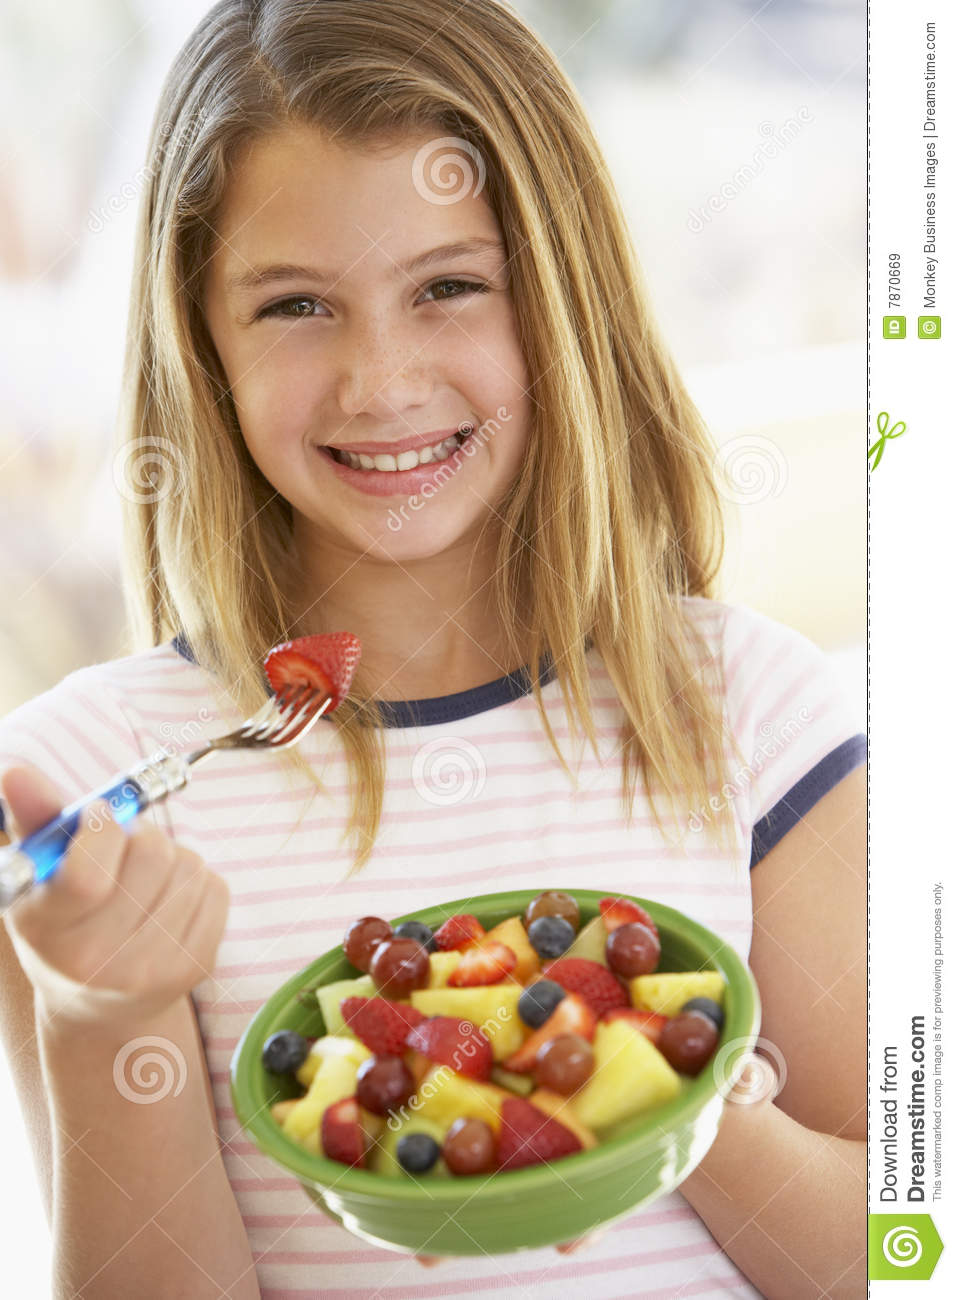 Young Girl Eating Fresh Fruit Salad Royalty Free Stock